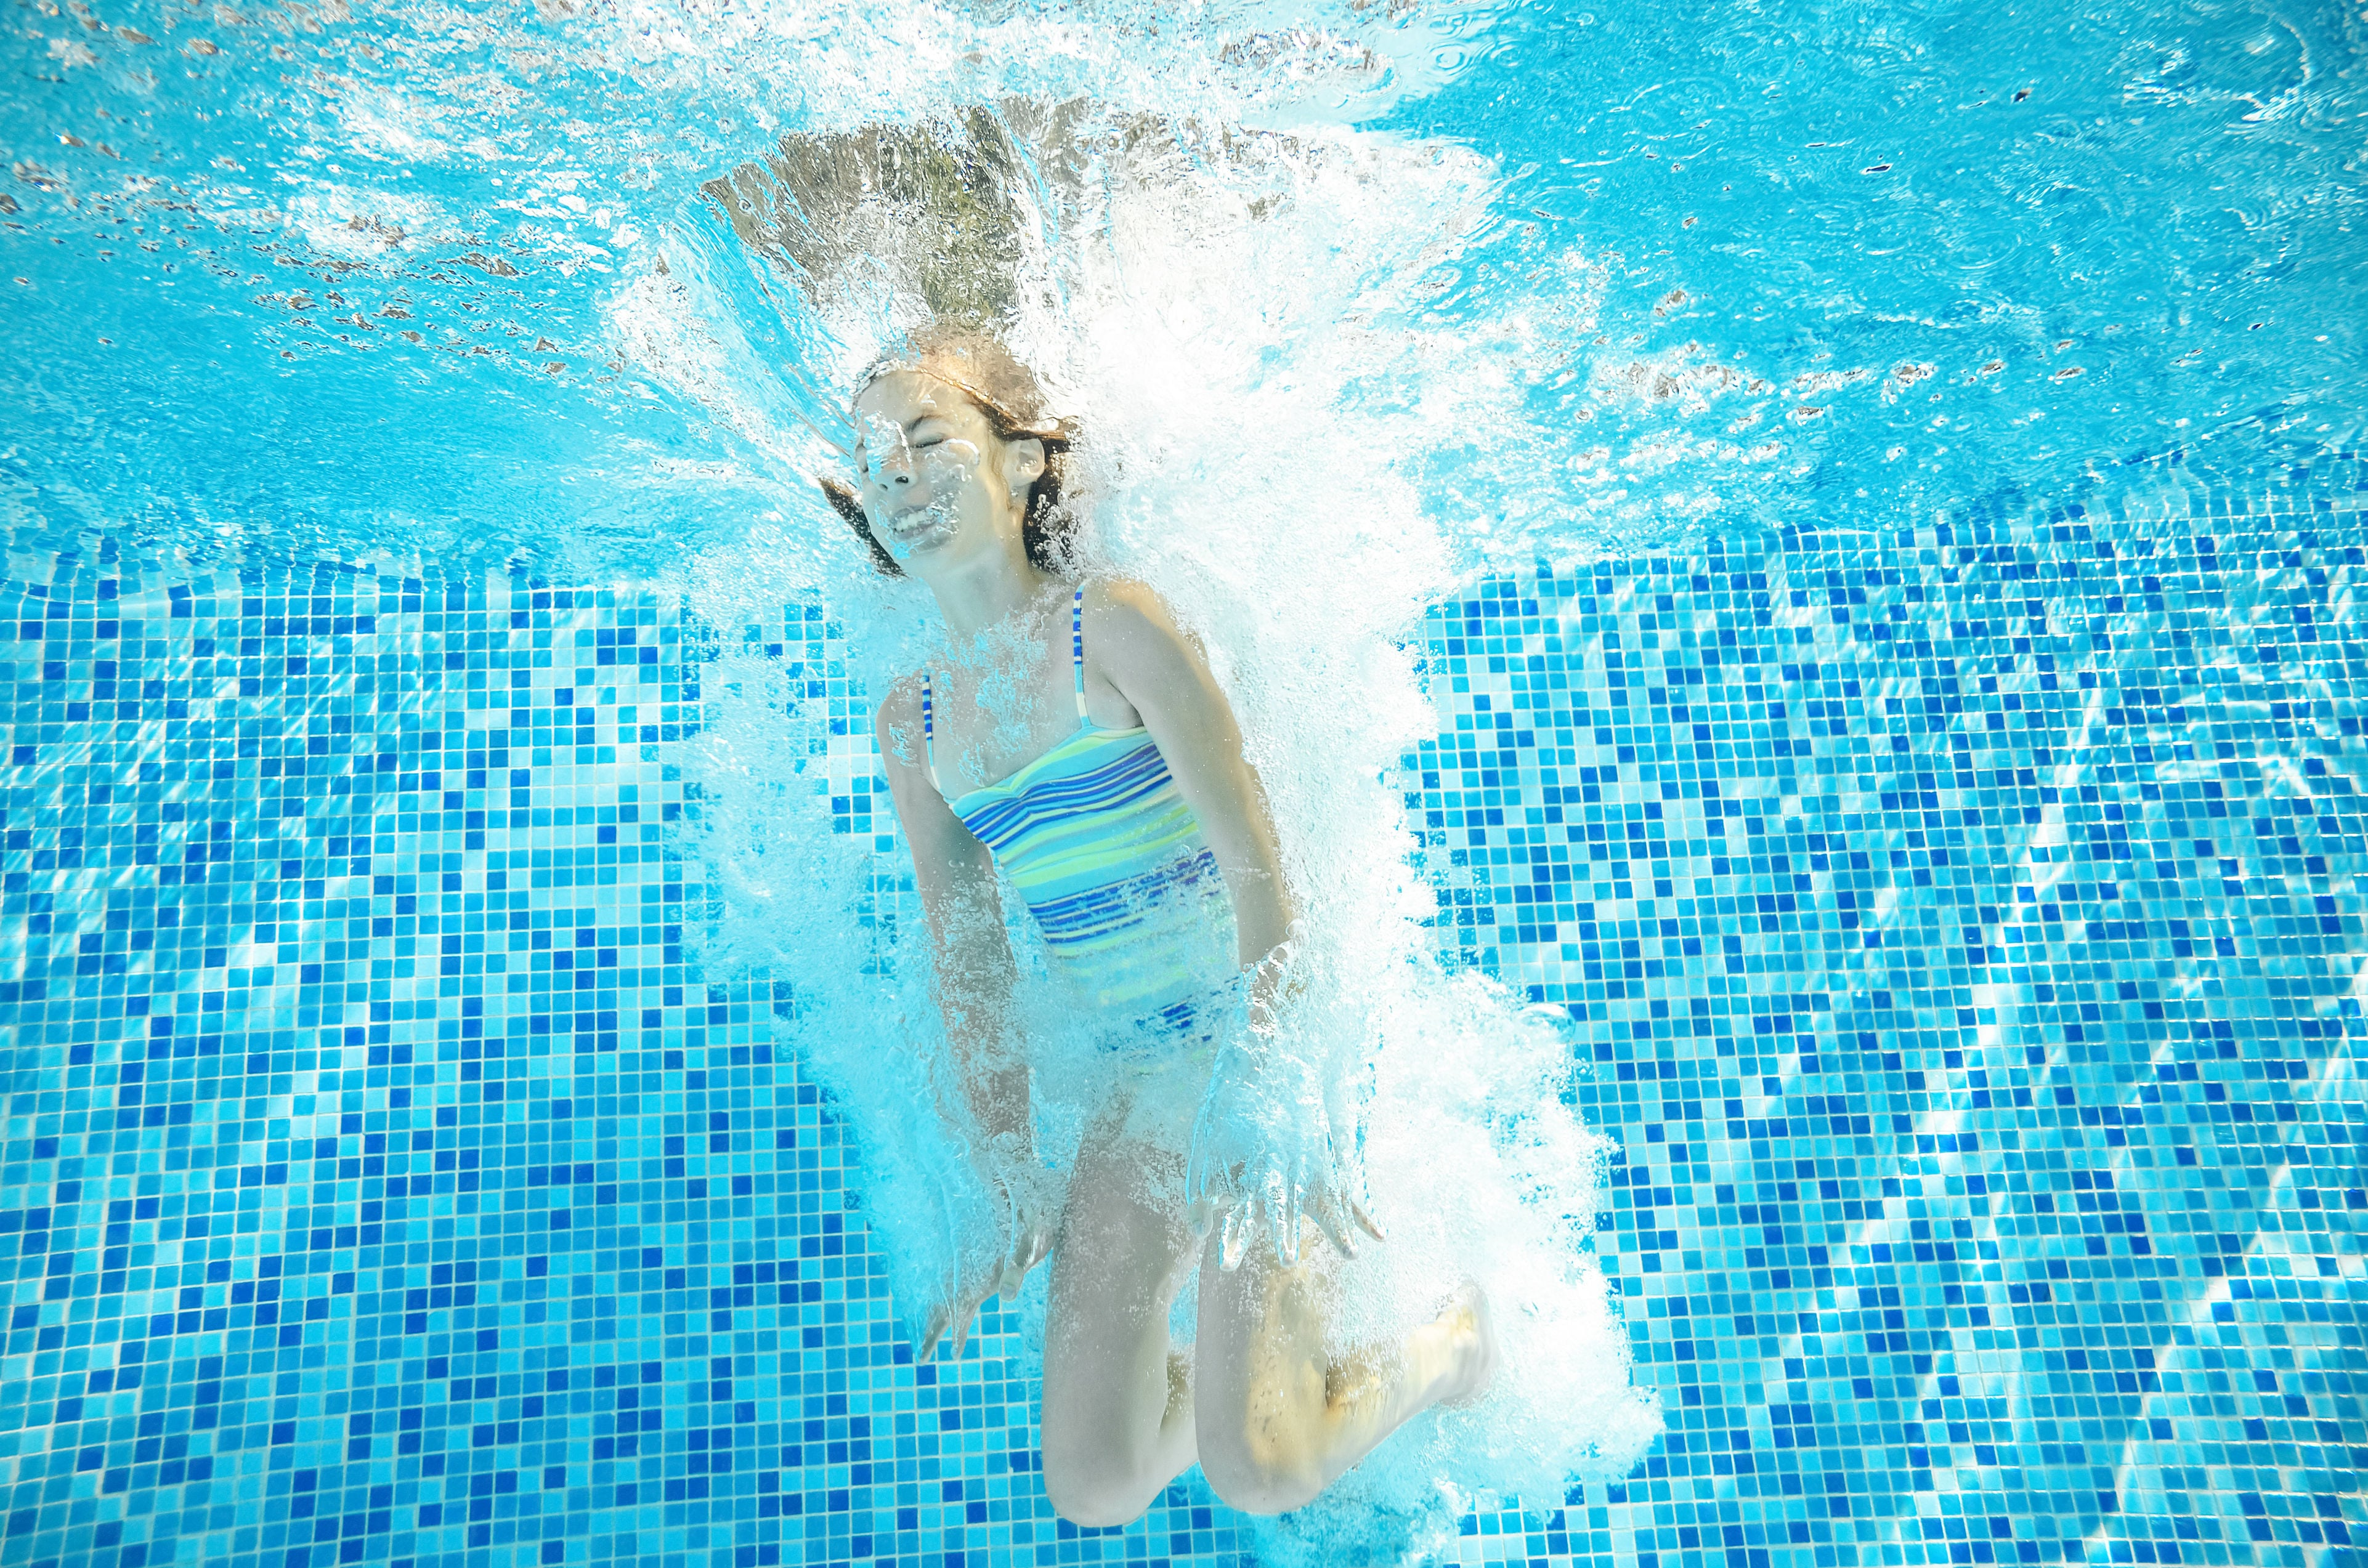 Fort Lauderdale Swimming Pool Accident Lawyers